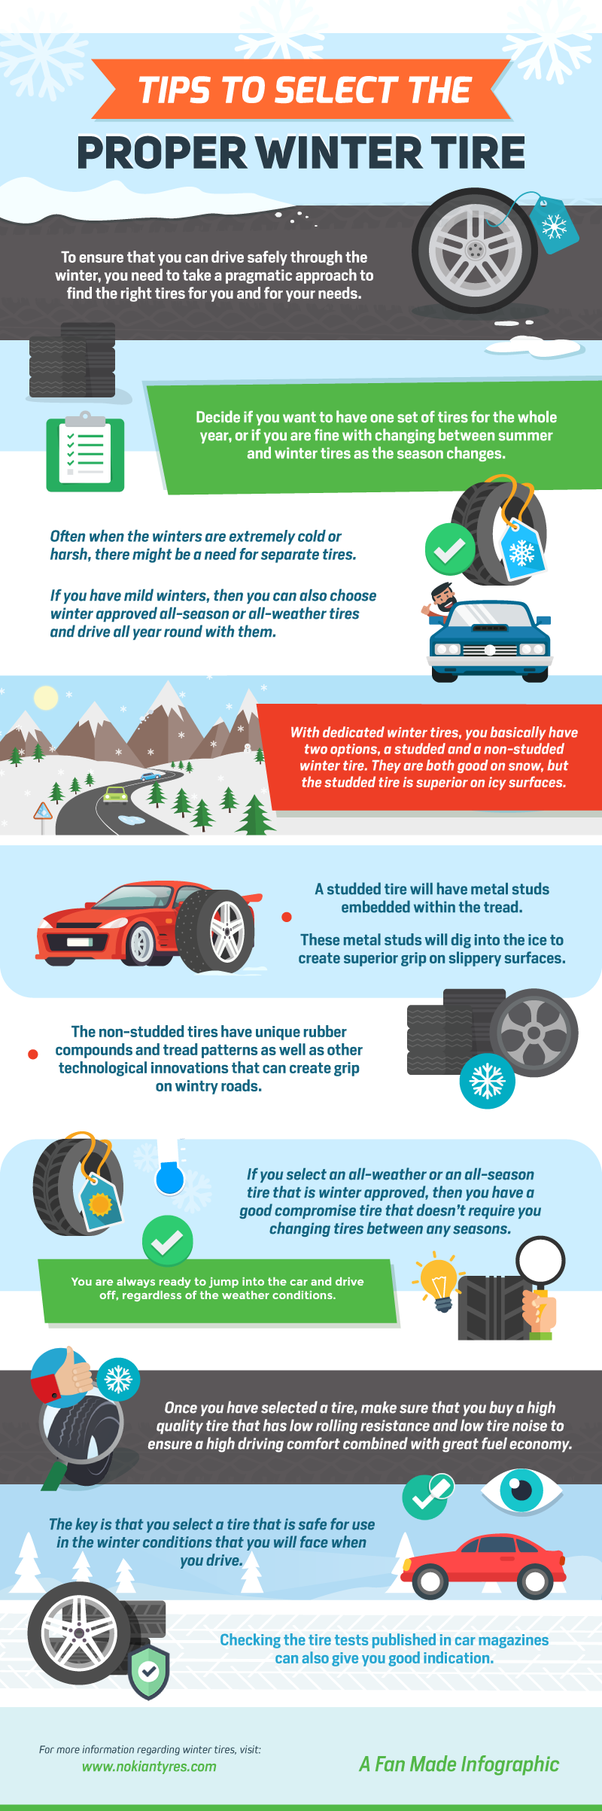 Tips to Select the Proper Winter Tire